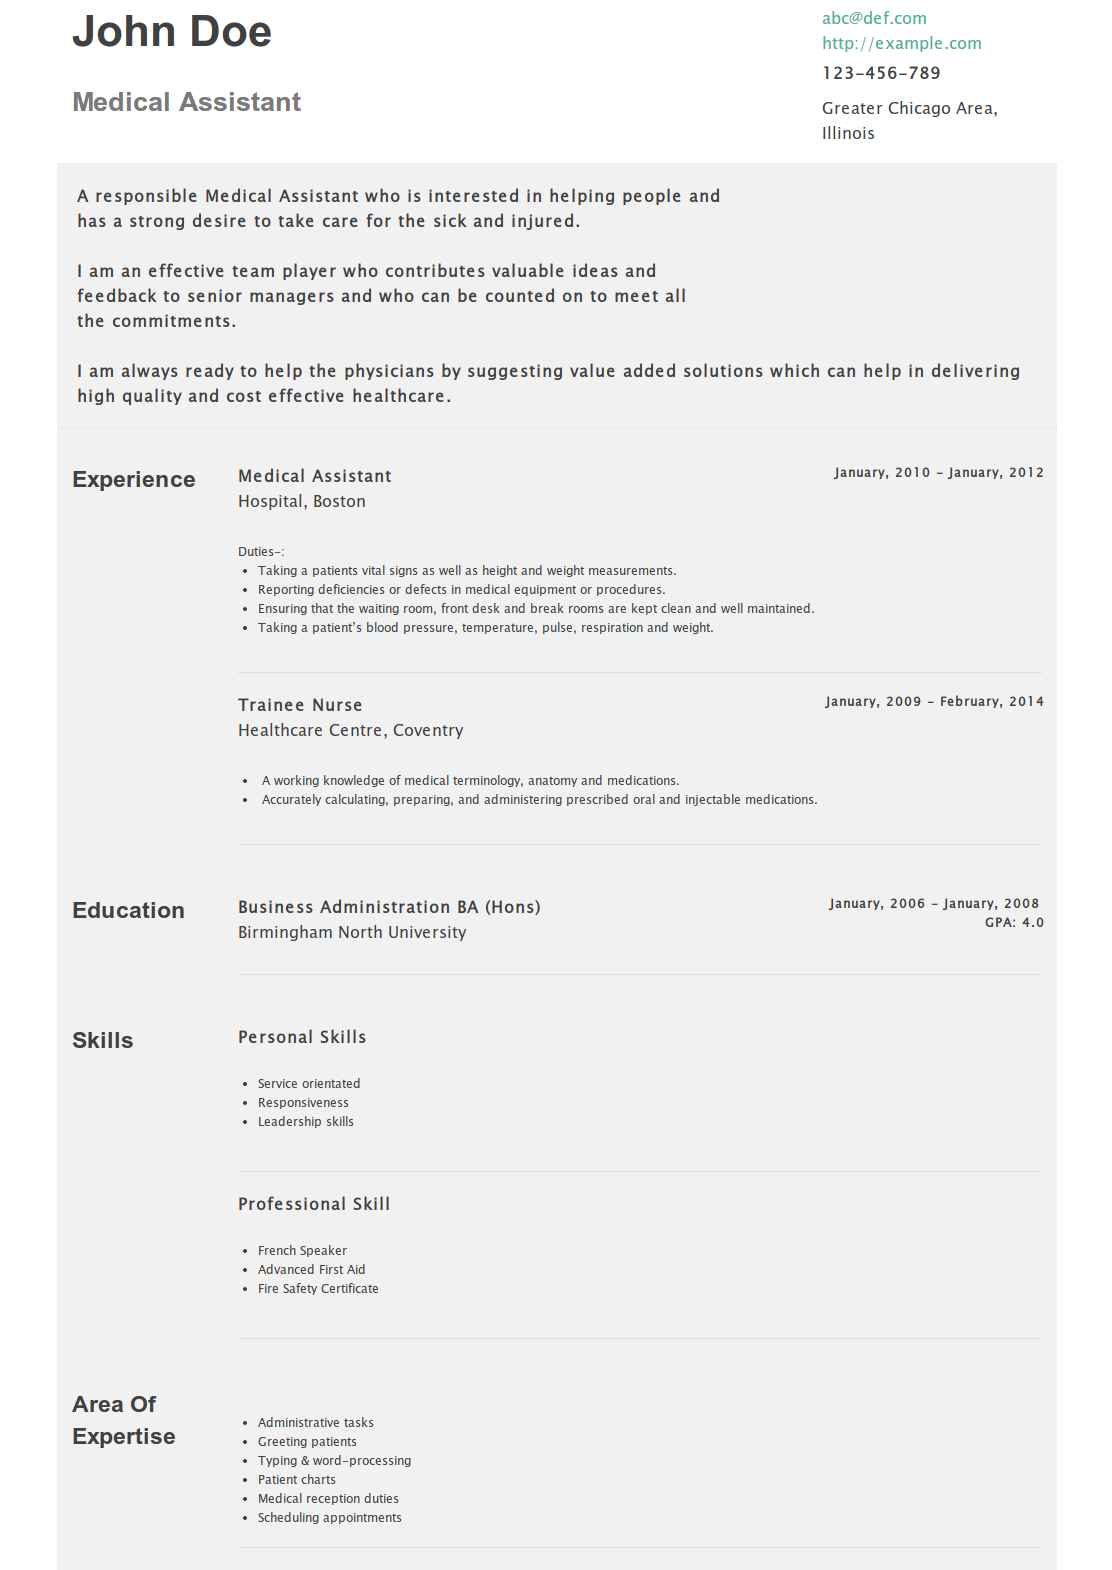 Medical Assistant Resume Medical Assistant Resume Httpshipcvabcrmedicalassistant